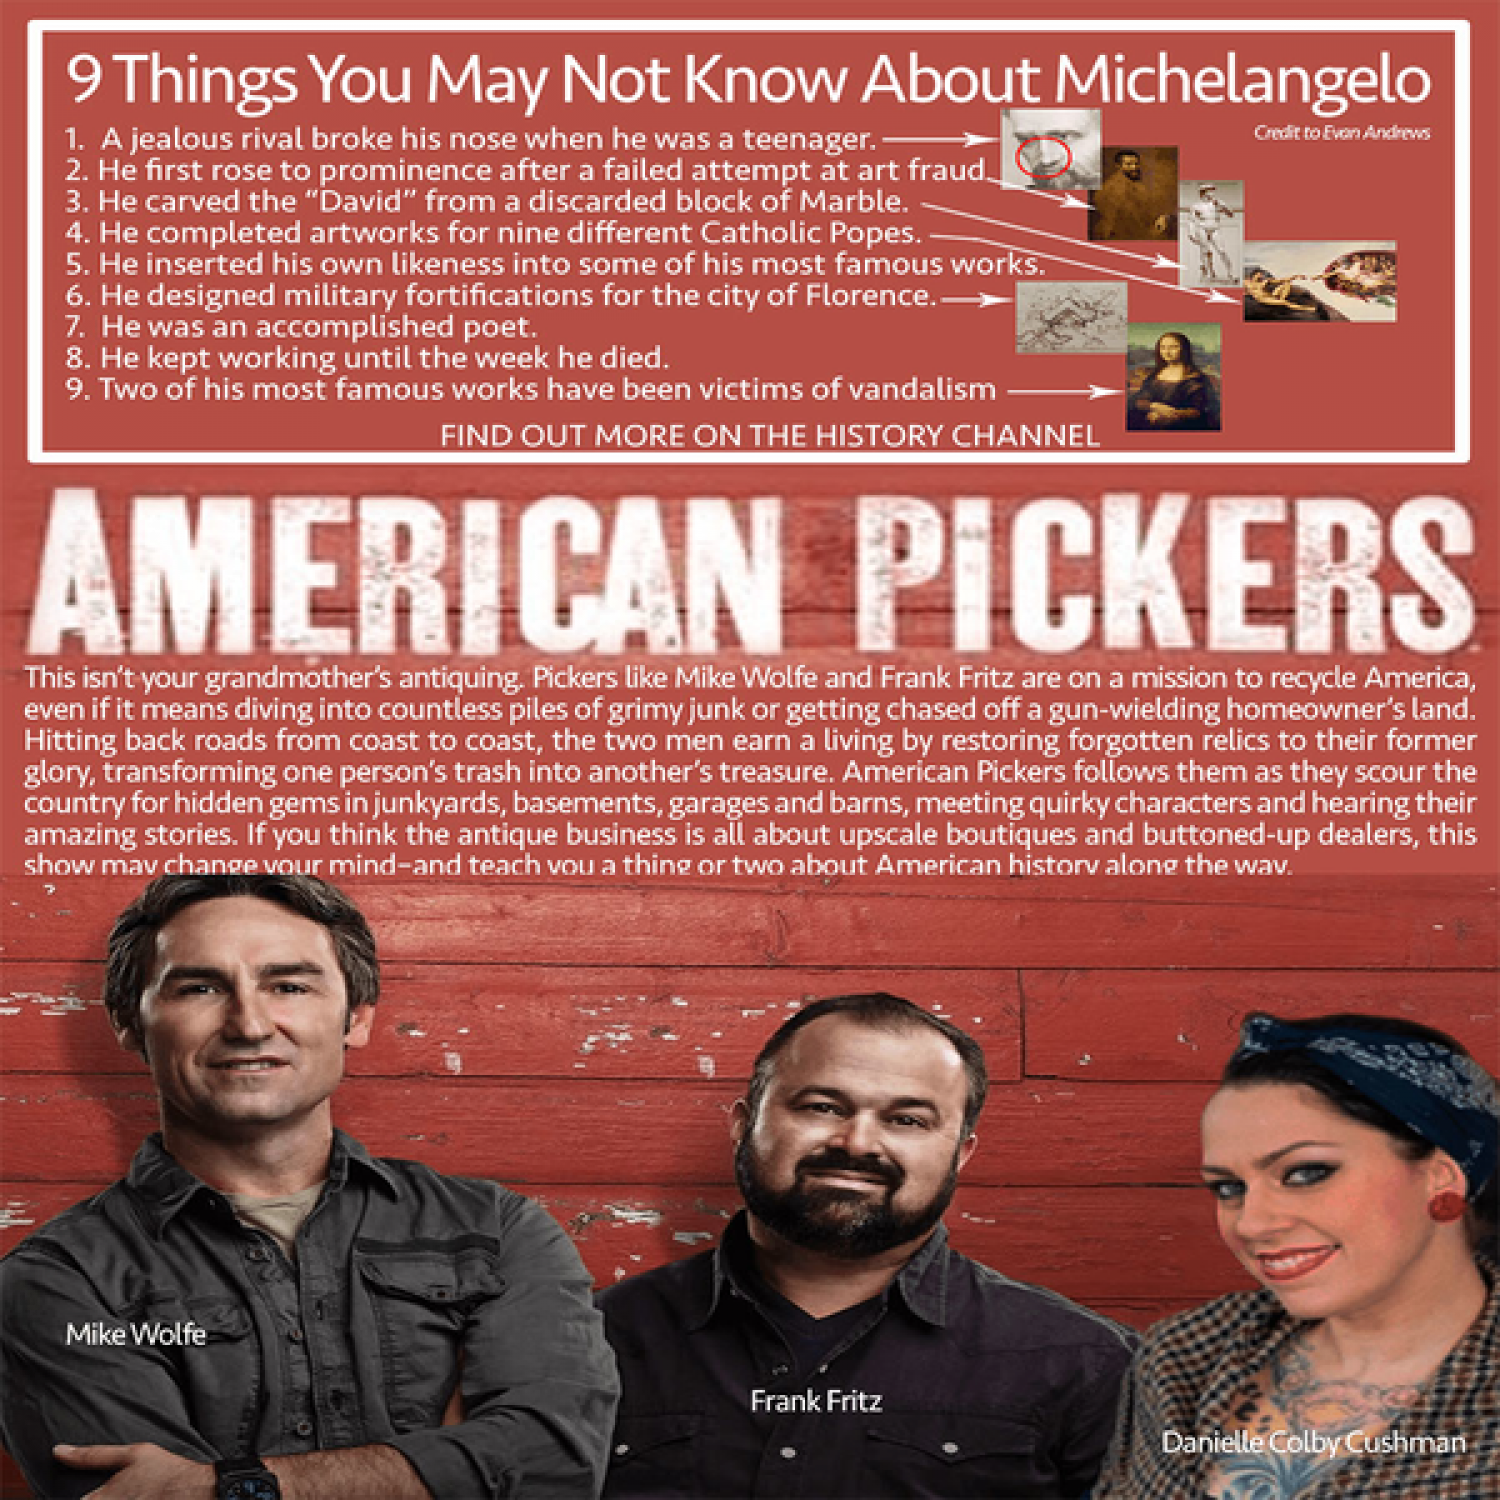 The American Pickers - Witness how these 2 American turn garbage into money Infographic